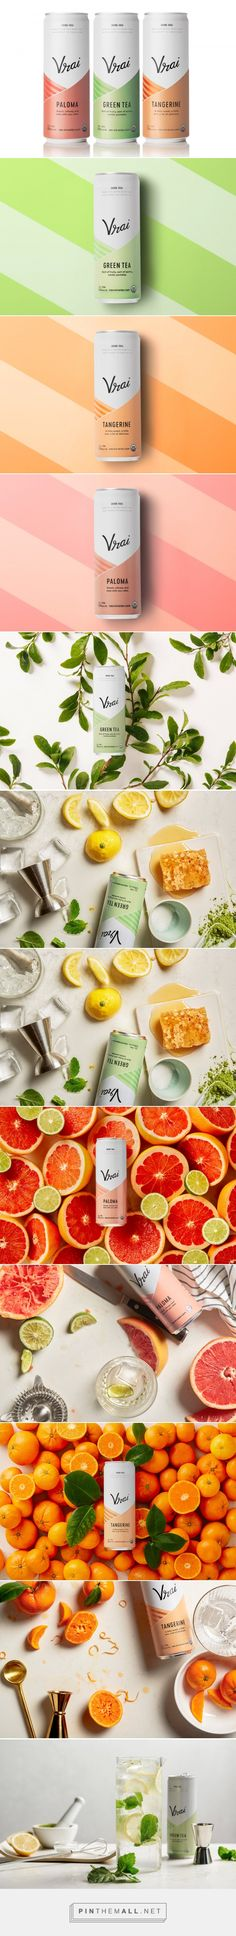 Vrai is the Perfect On-The-Go Vodka To Enjoy Summer With — The Dieline | Packaging & Branding Design & Innovation News - created via https://pinthemall.net